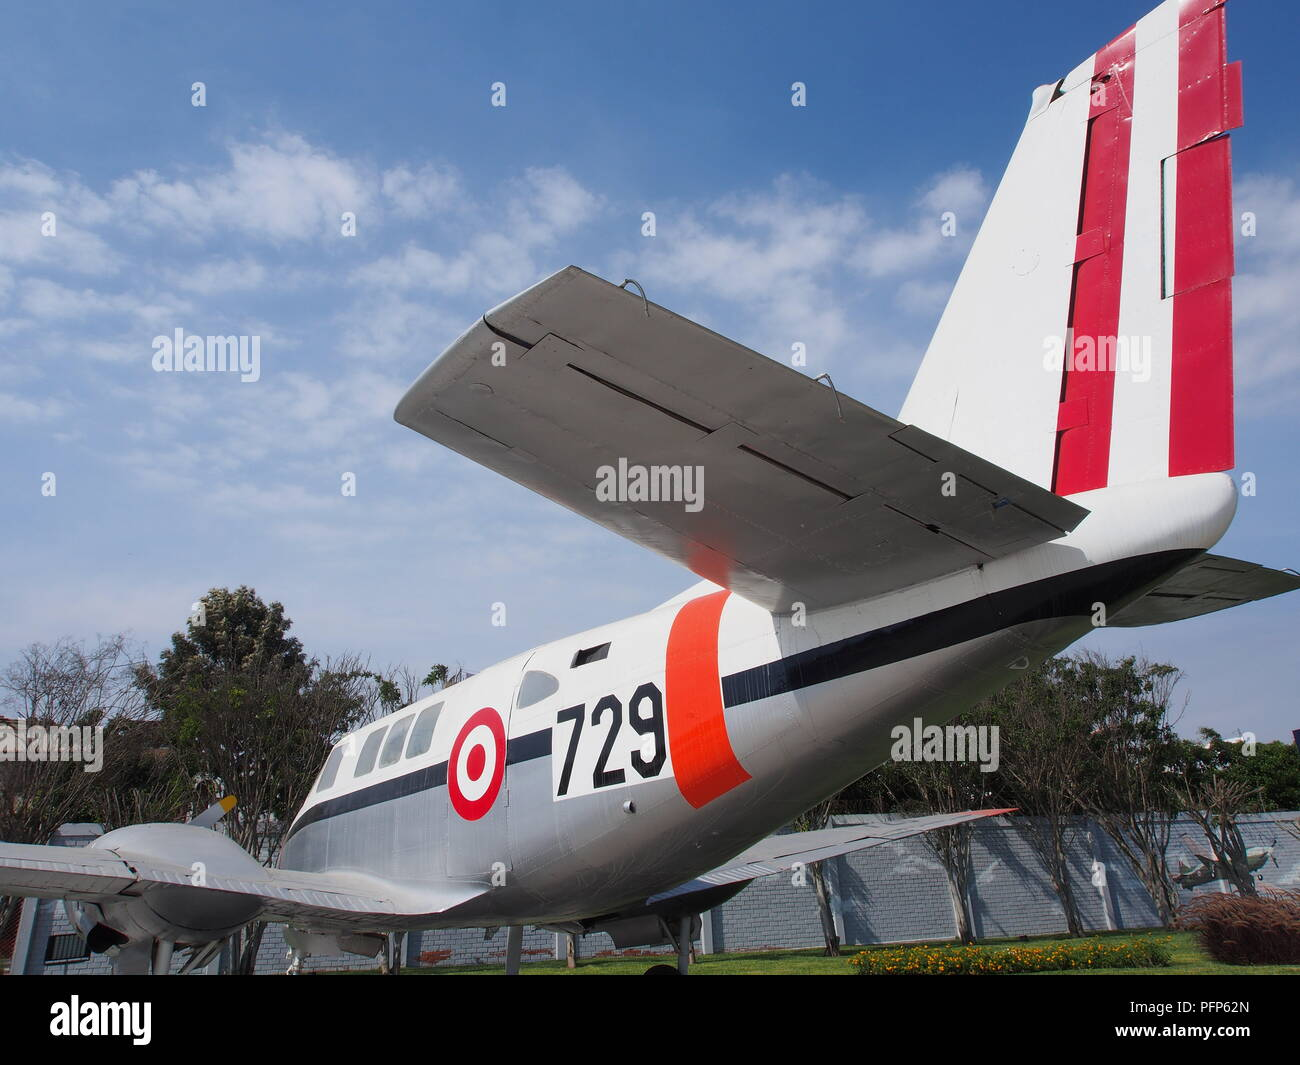 Tail of a Beechcraft Queen Air A 80, a twin-engined light aircraft  from the Peruvian Air Force - FAP. Credit: Fotoholica Press Agency/Alamy - Stock Image